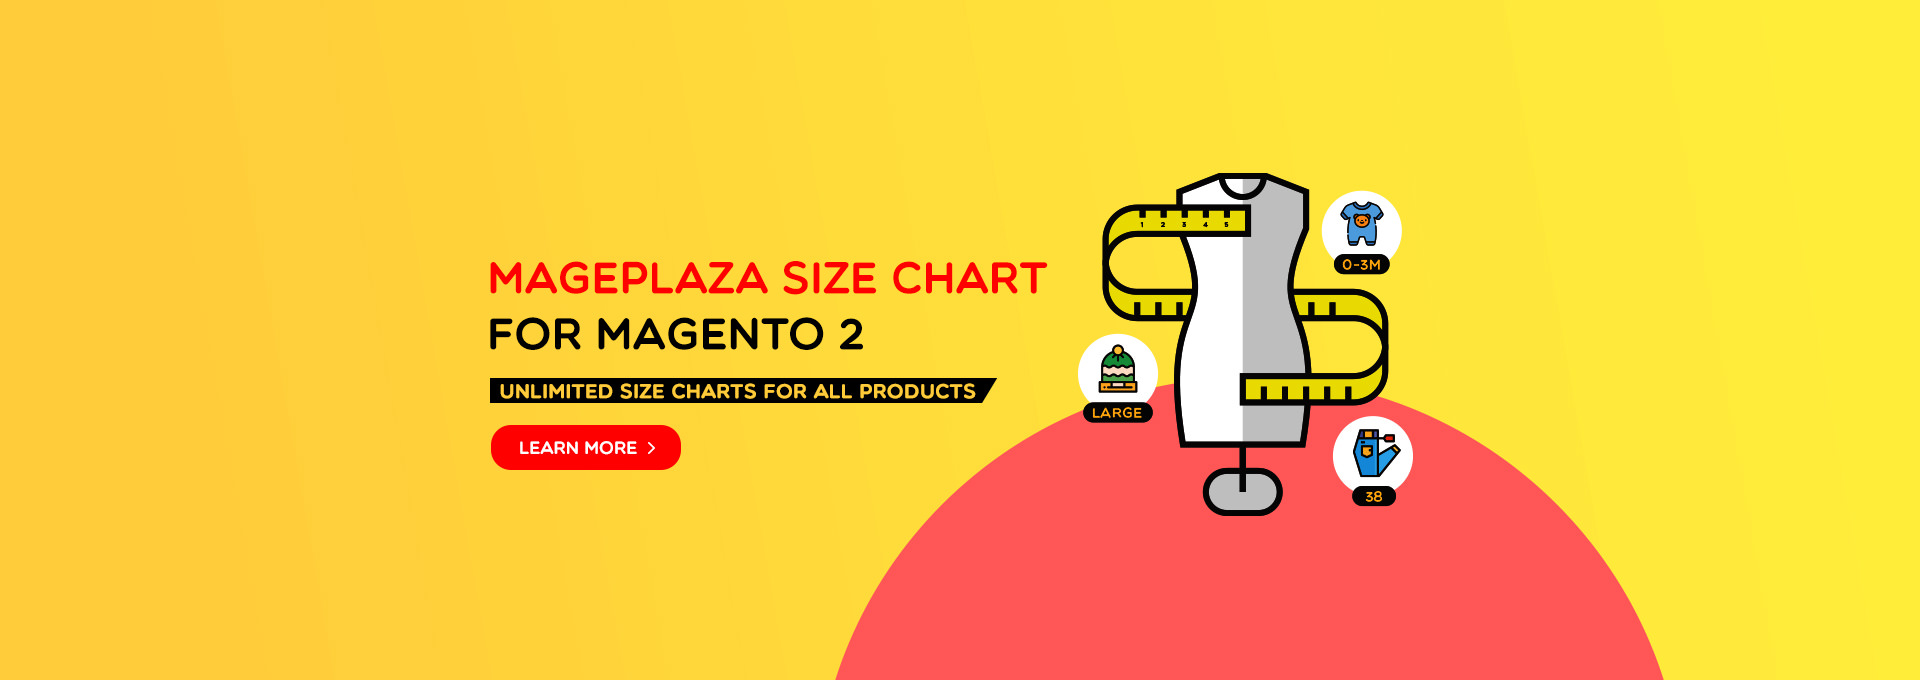 Magento 2 Size Chart - Awesome features